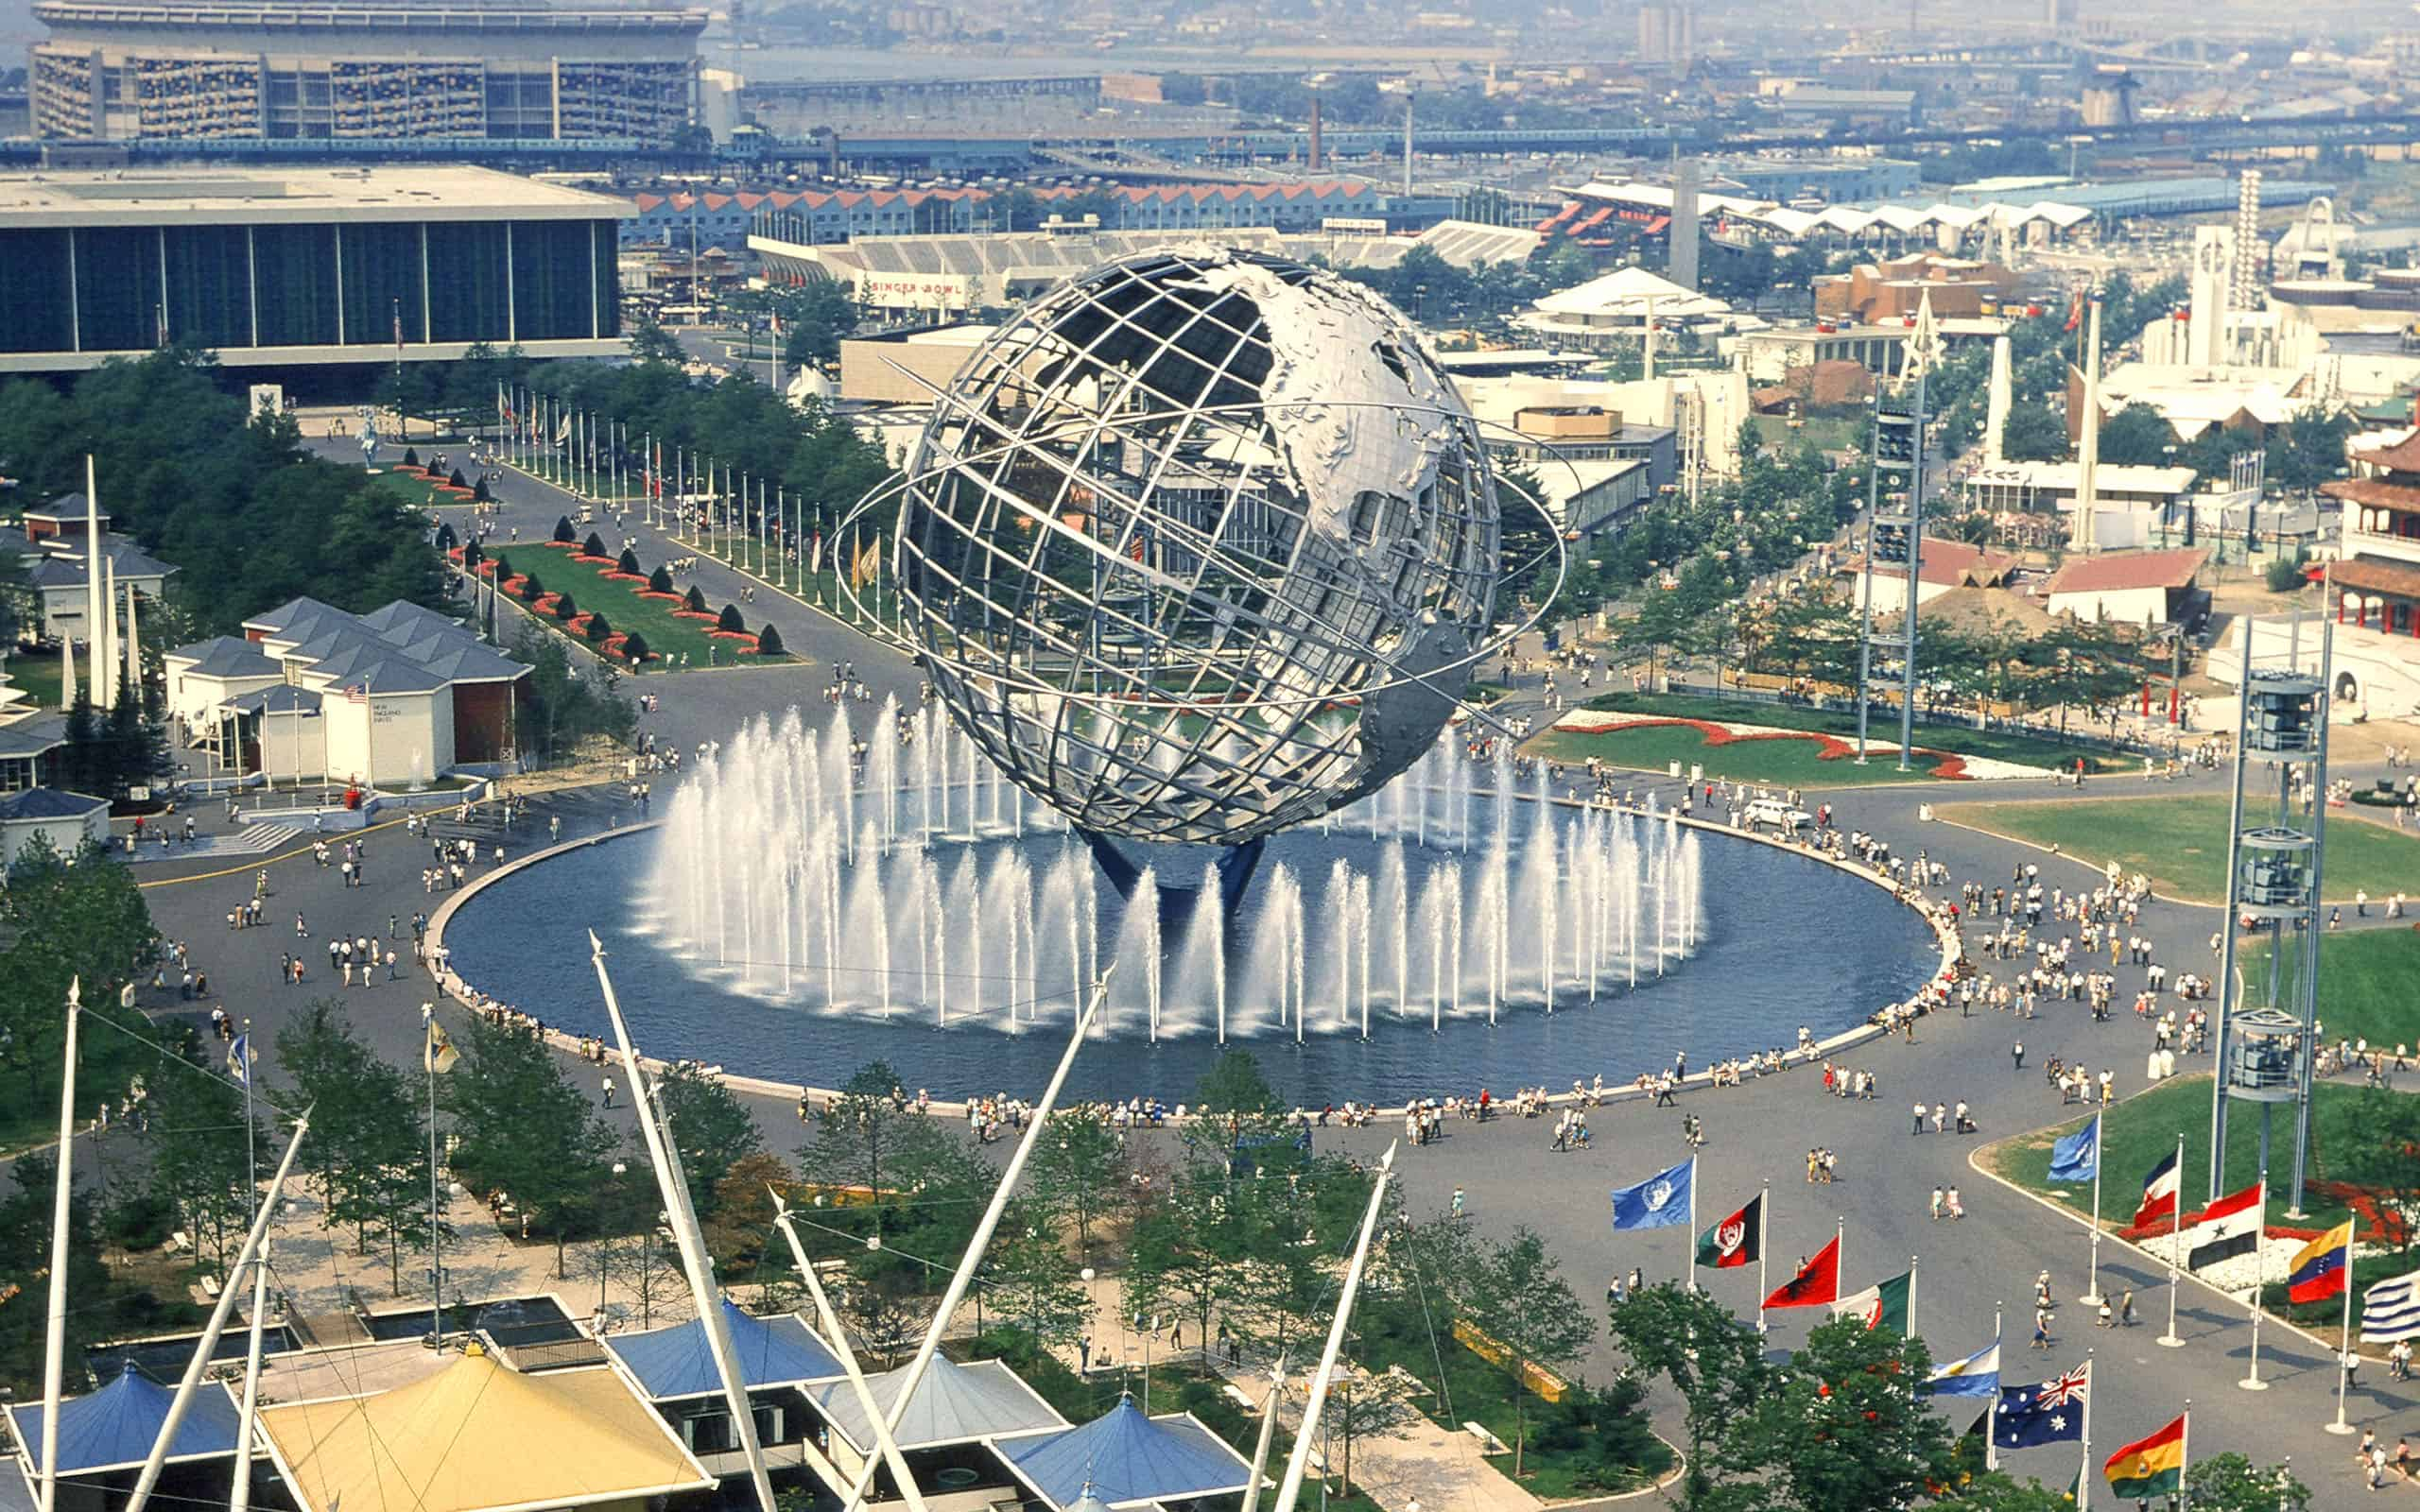 Unisphere - Flushing Meadows Corona Park / Photo Credit: thenewyorkstreets.com